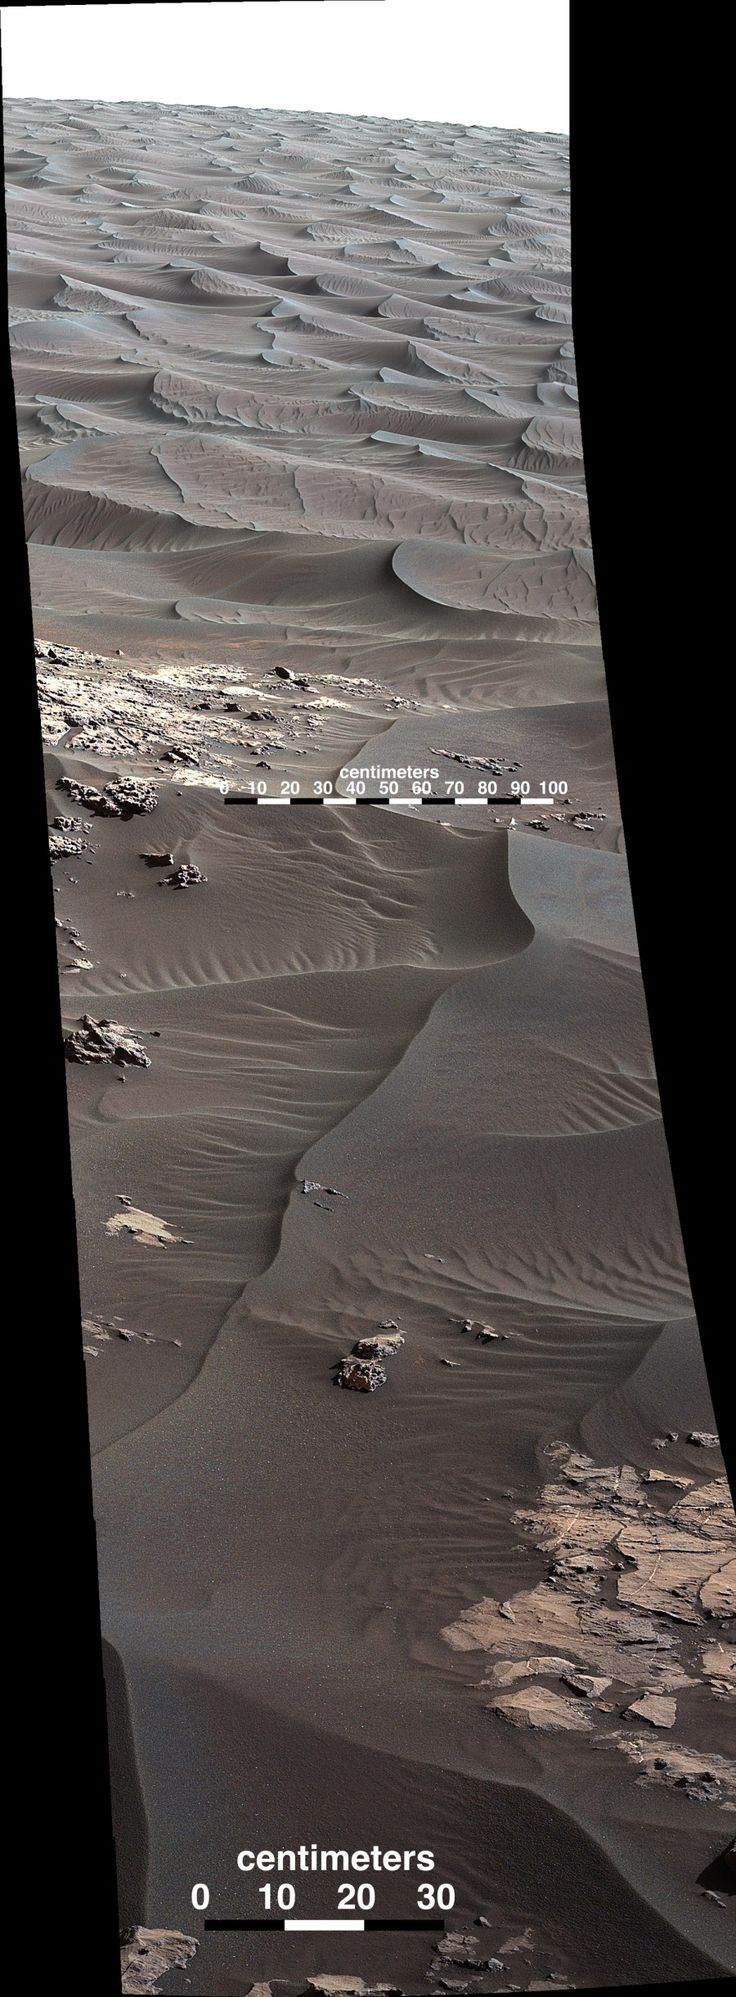 Curiosity Celebrates Christmas at Red Planet Paradise at Namib Dune with 1st Mastcam Self-portrait